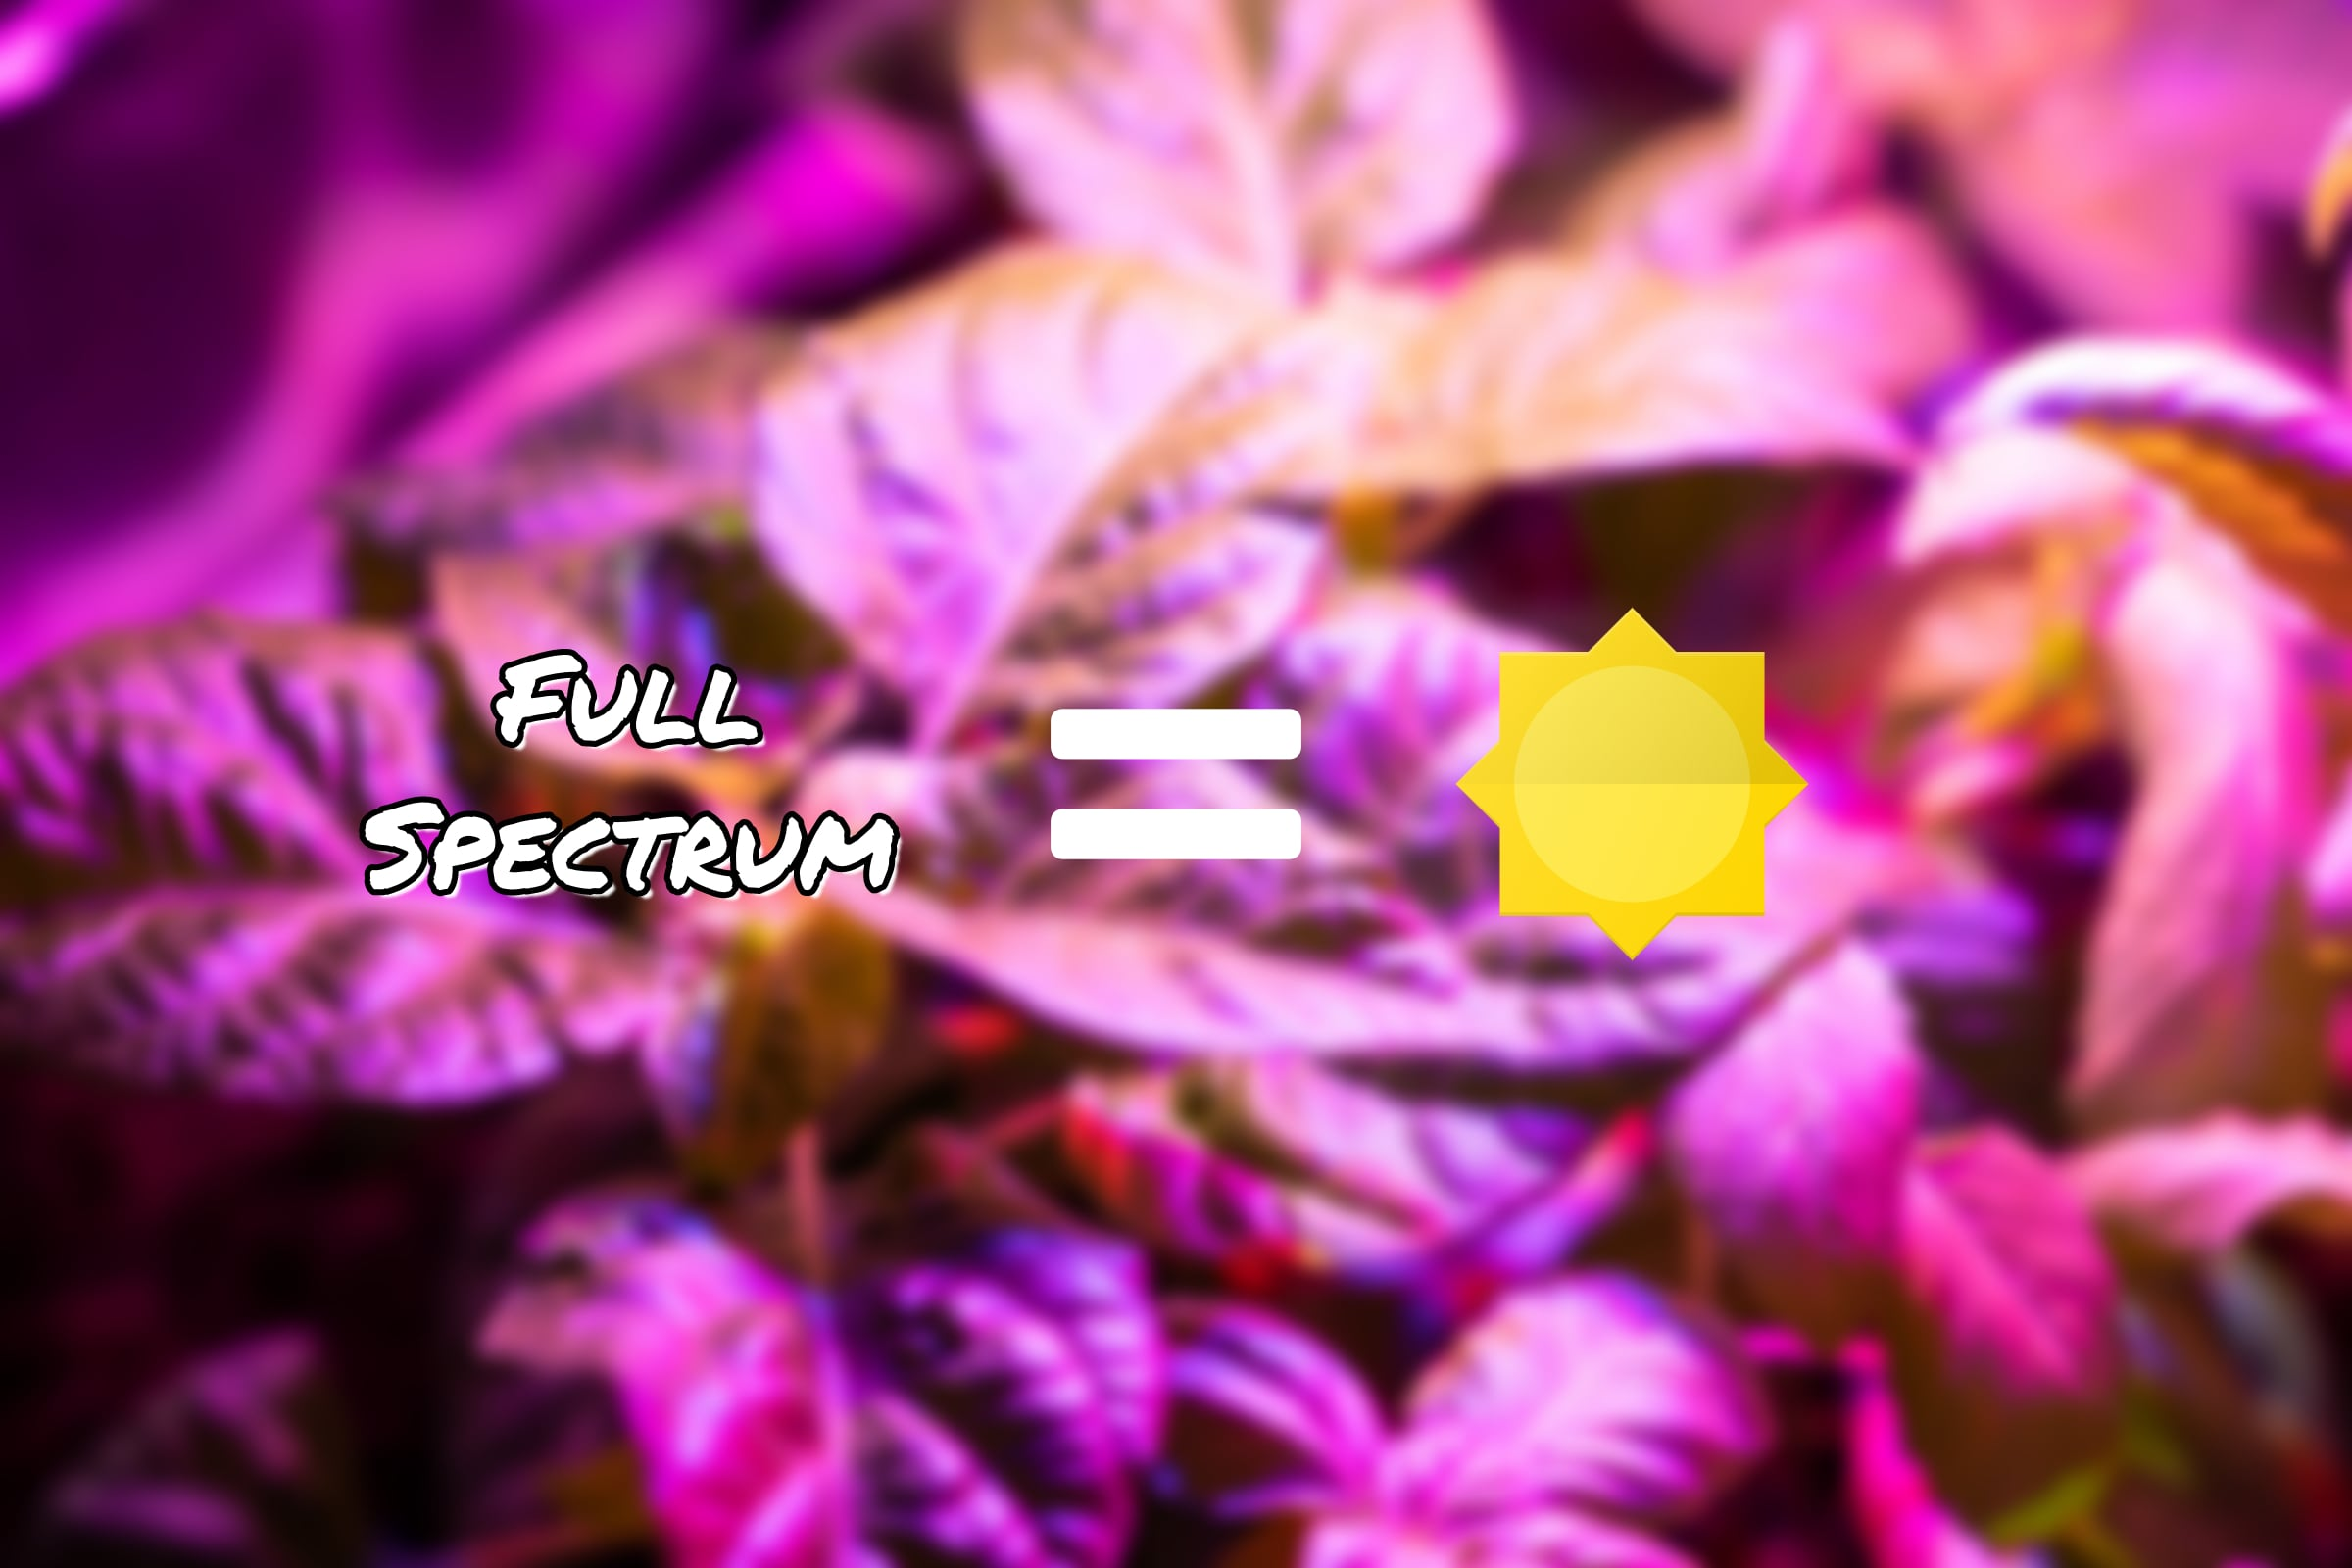 Full Spectrum Equals Sun